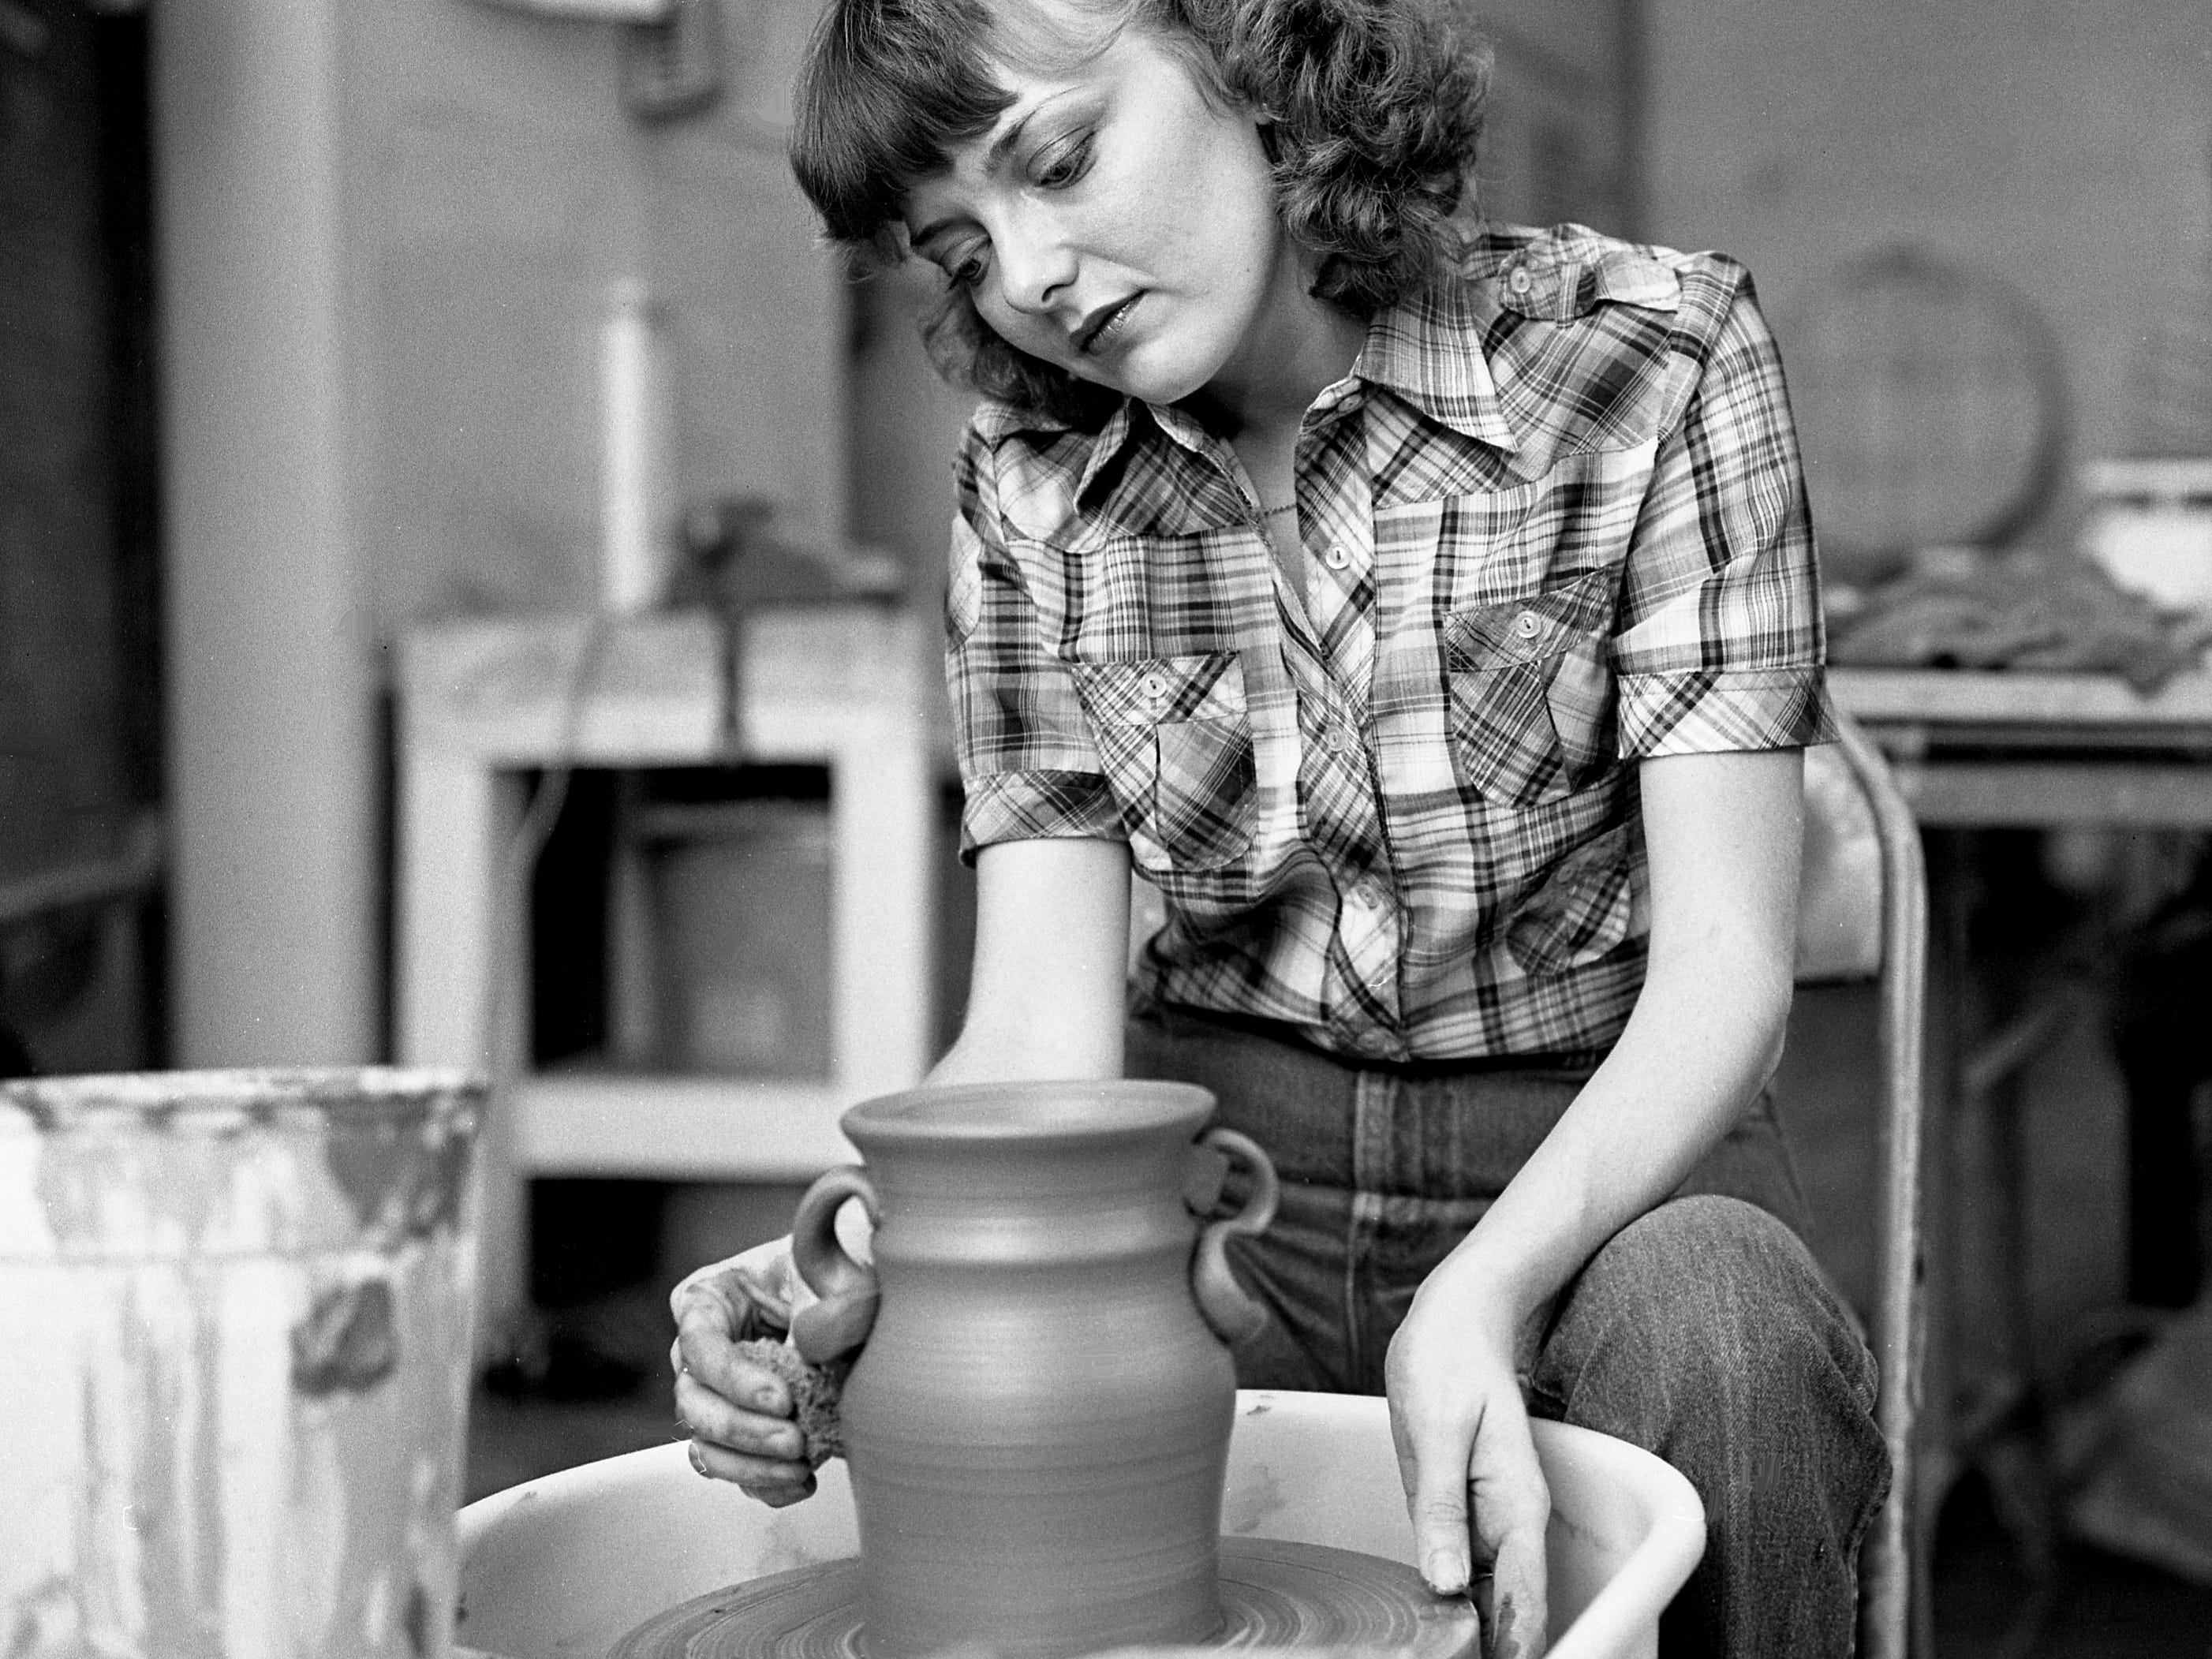 Middle Tennessee State University art student Kay Davenport is working on a pot at the Centennial Park Arts Center on April 19, 1979. She and other fellow students will be demonstrating the potter's art during the upcoming Tennessee Craft Fair in the park.